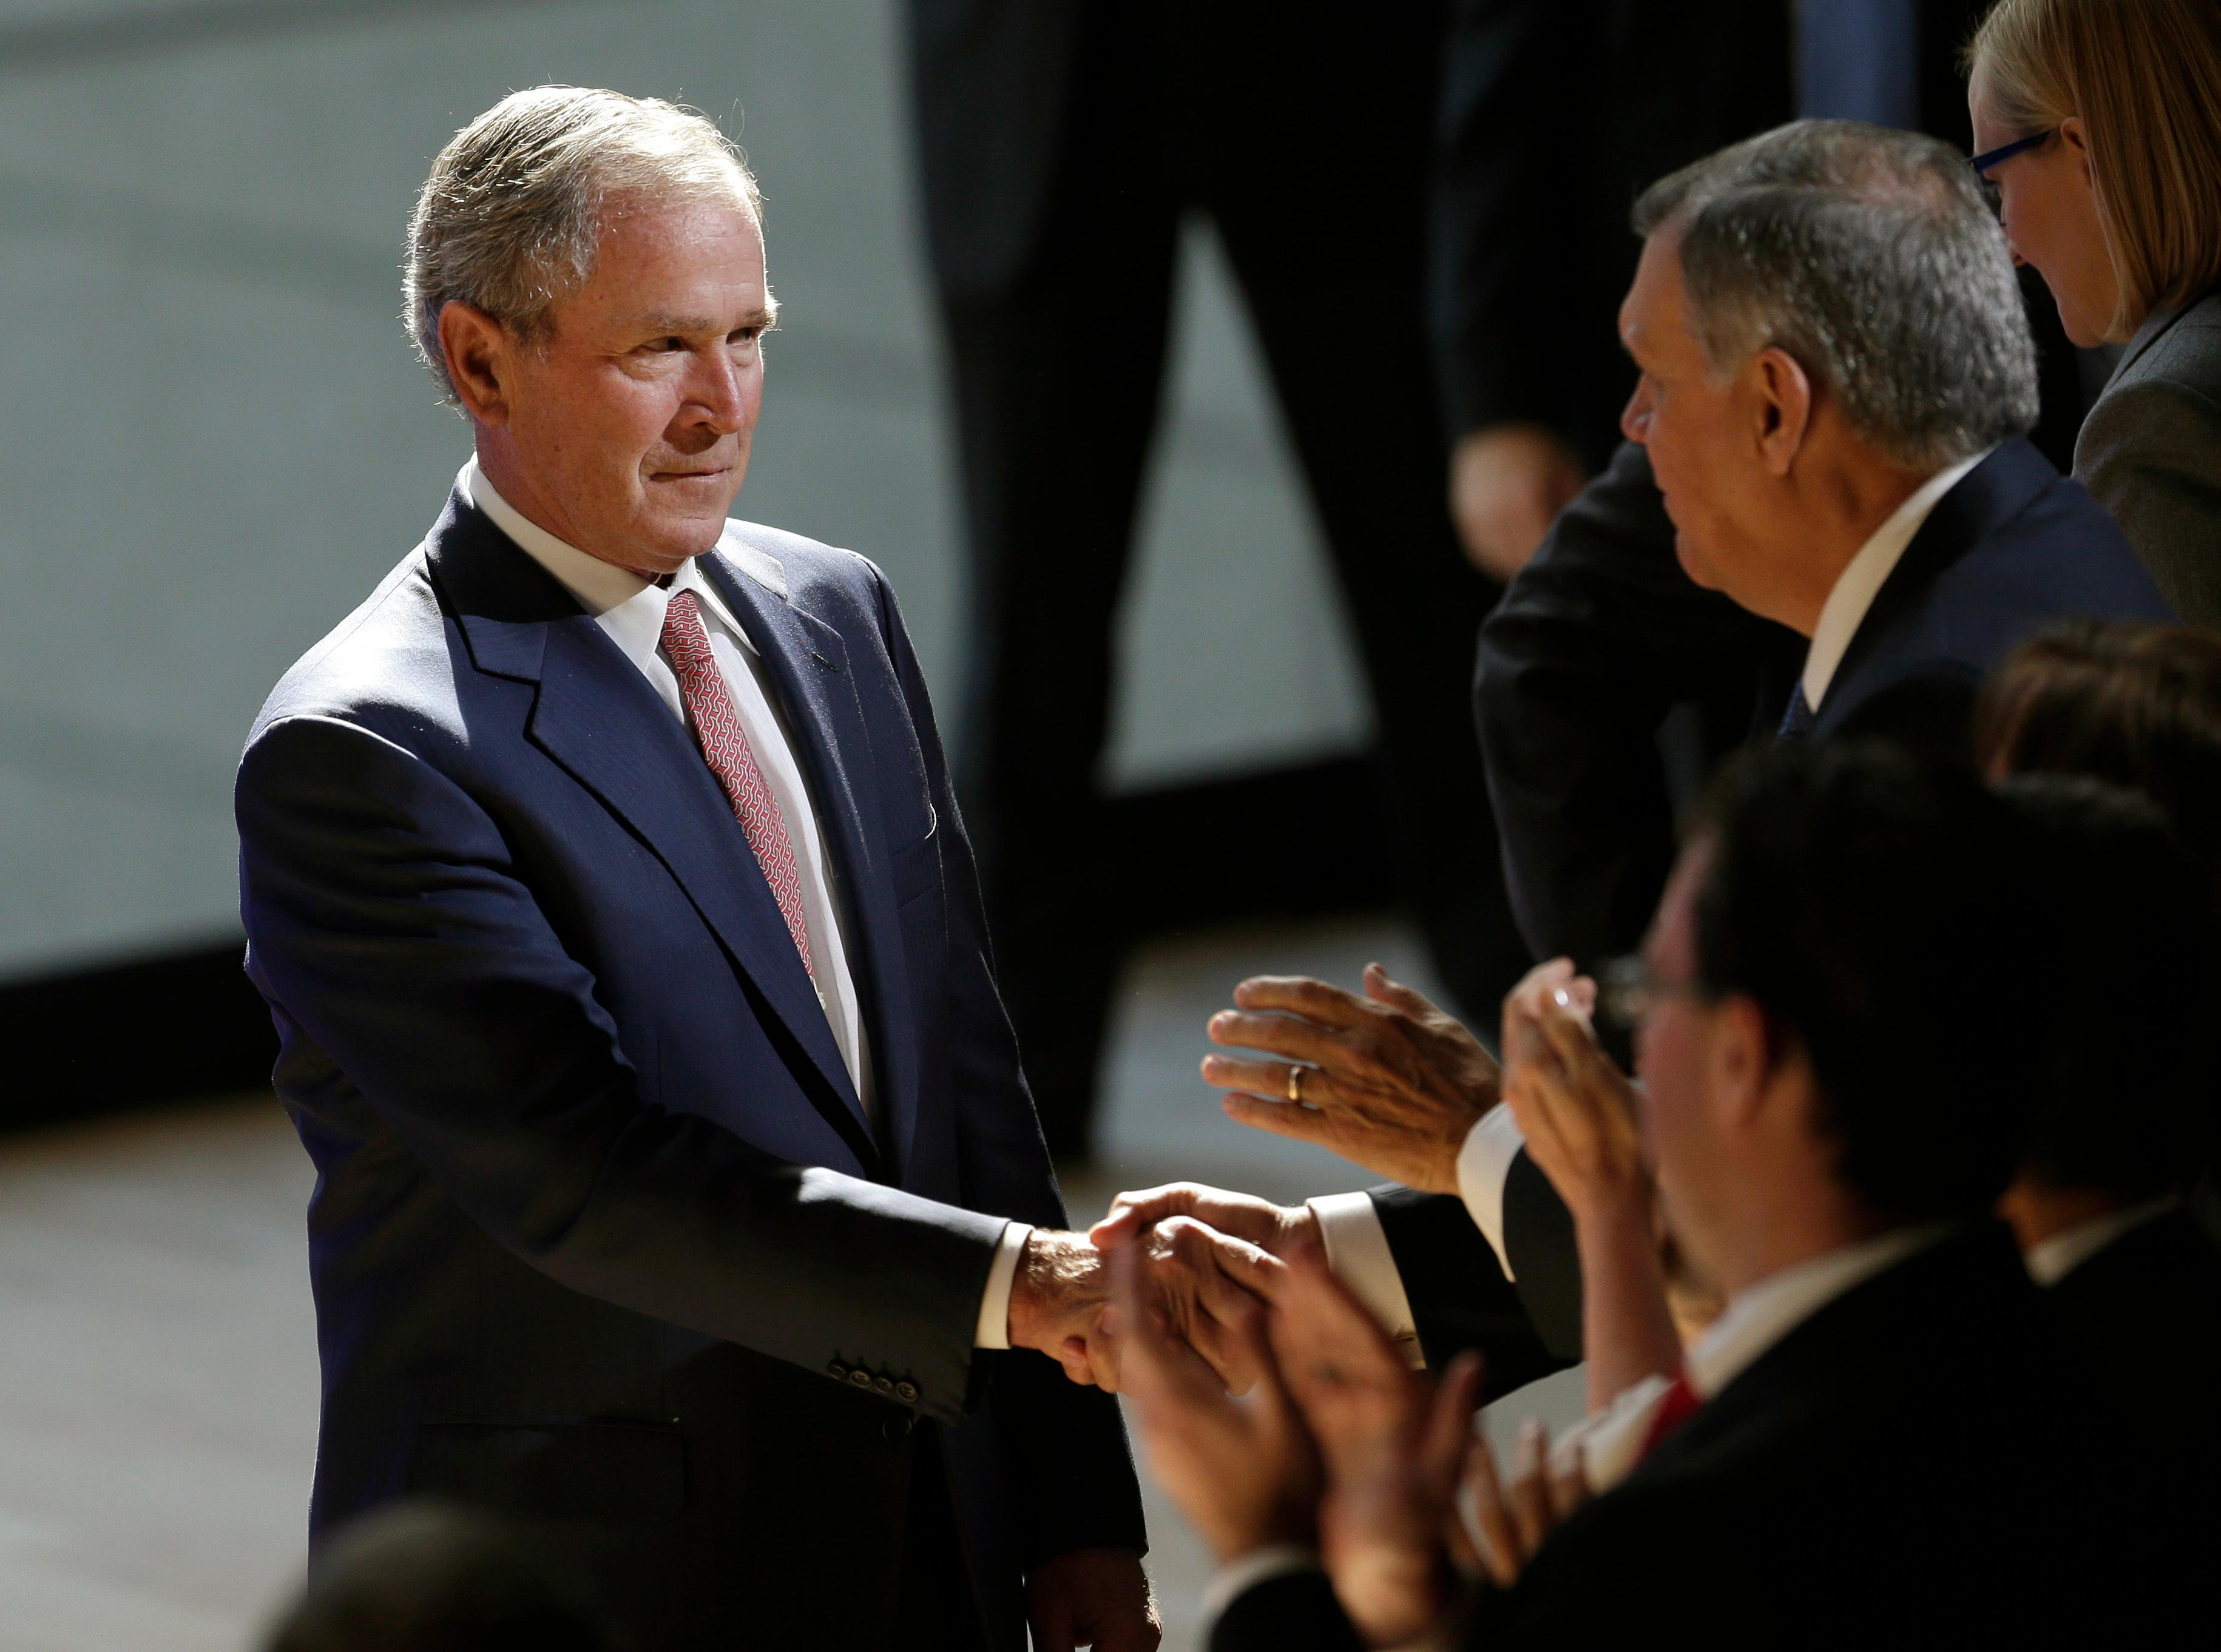 Former U.S. President George W. Bush shakes hands with audience members after speaking at a forum sponsored by the George W. Bush Institute in New York, Thursday, Oct. 19, 2017. (AP Photo/Seth Wenig)